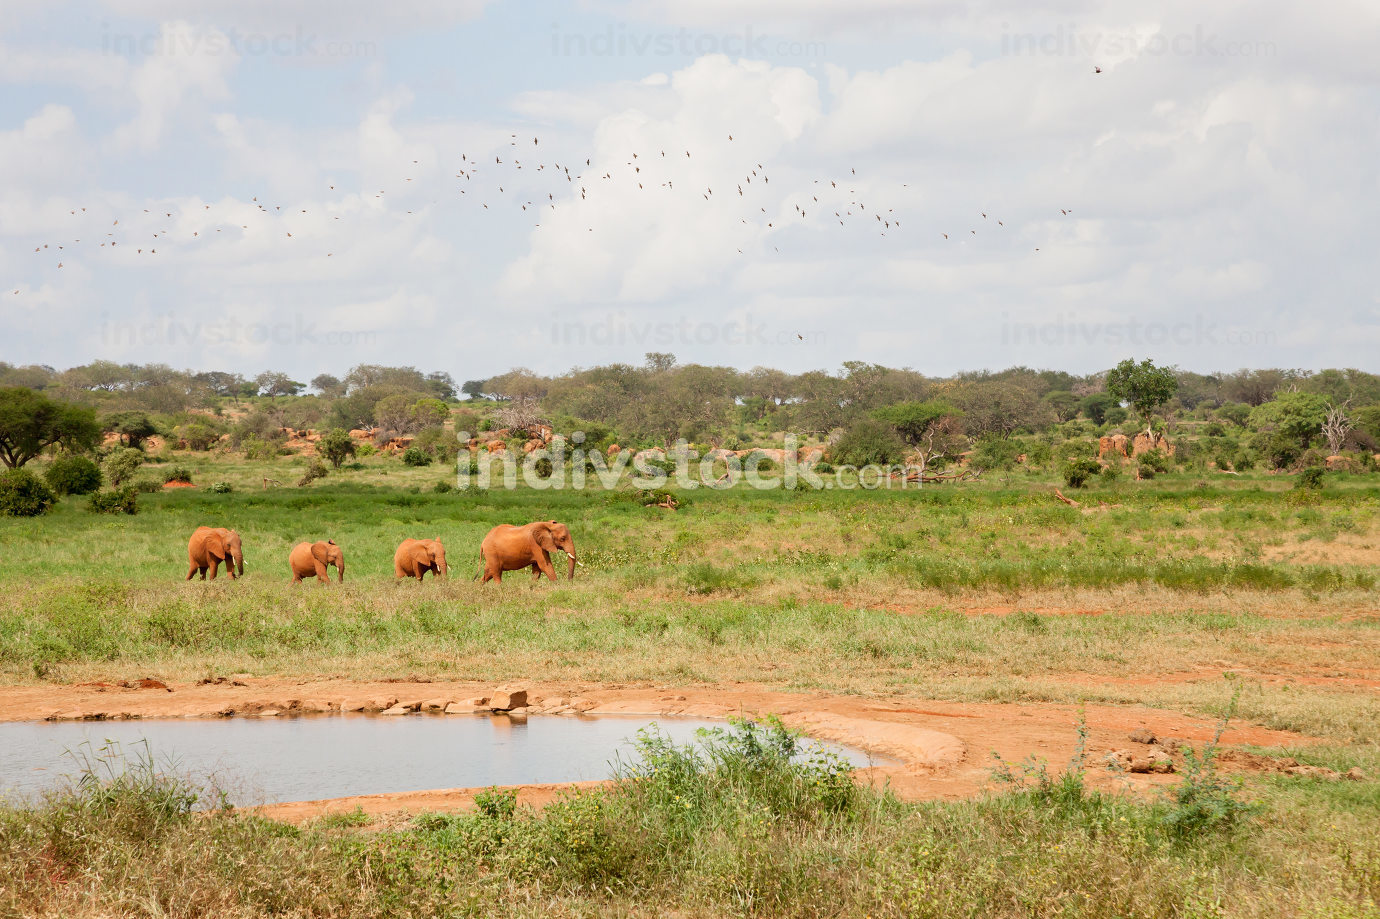 A elephant familiy is coming to the waterhole